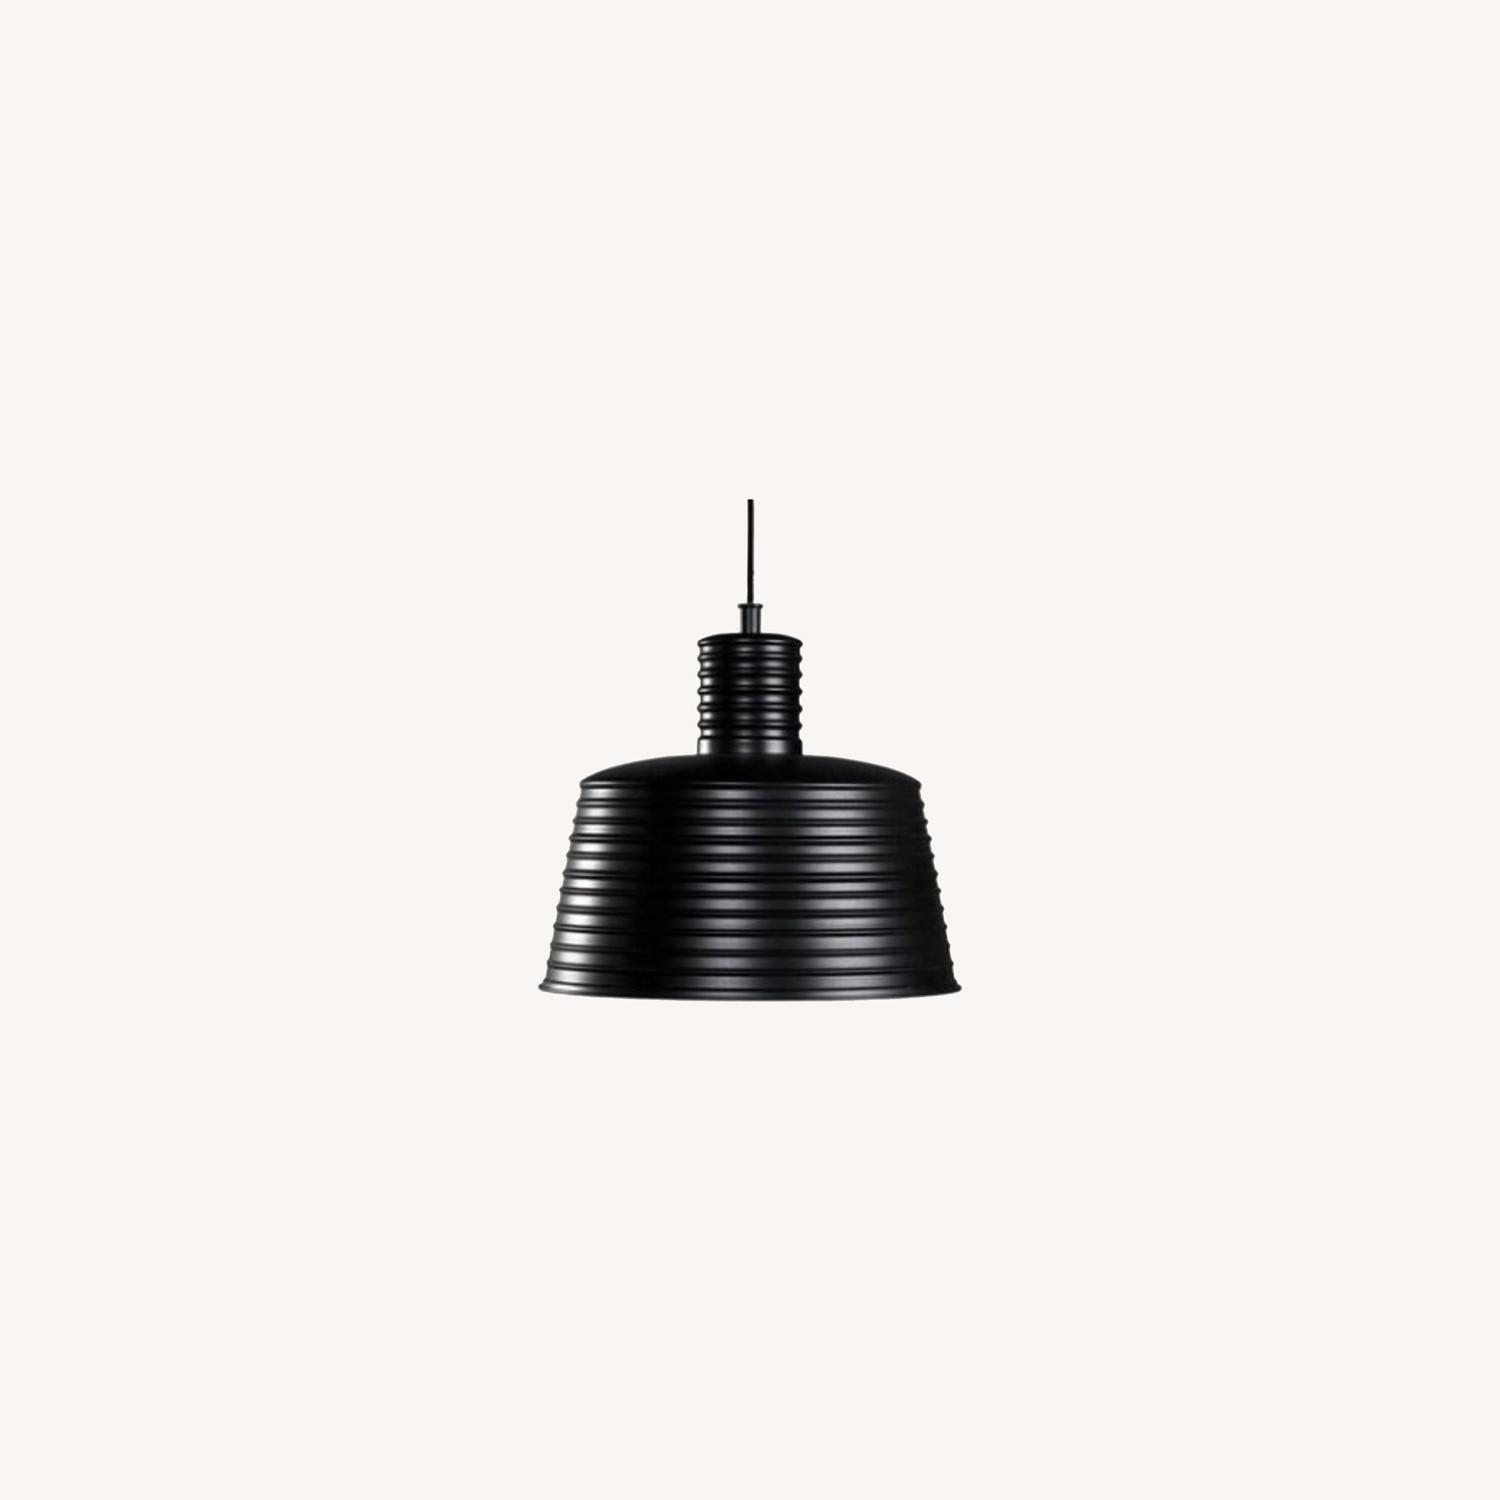 Ethan Allen Black and White Industrial Pendant - image-0